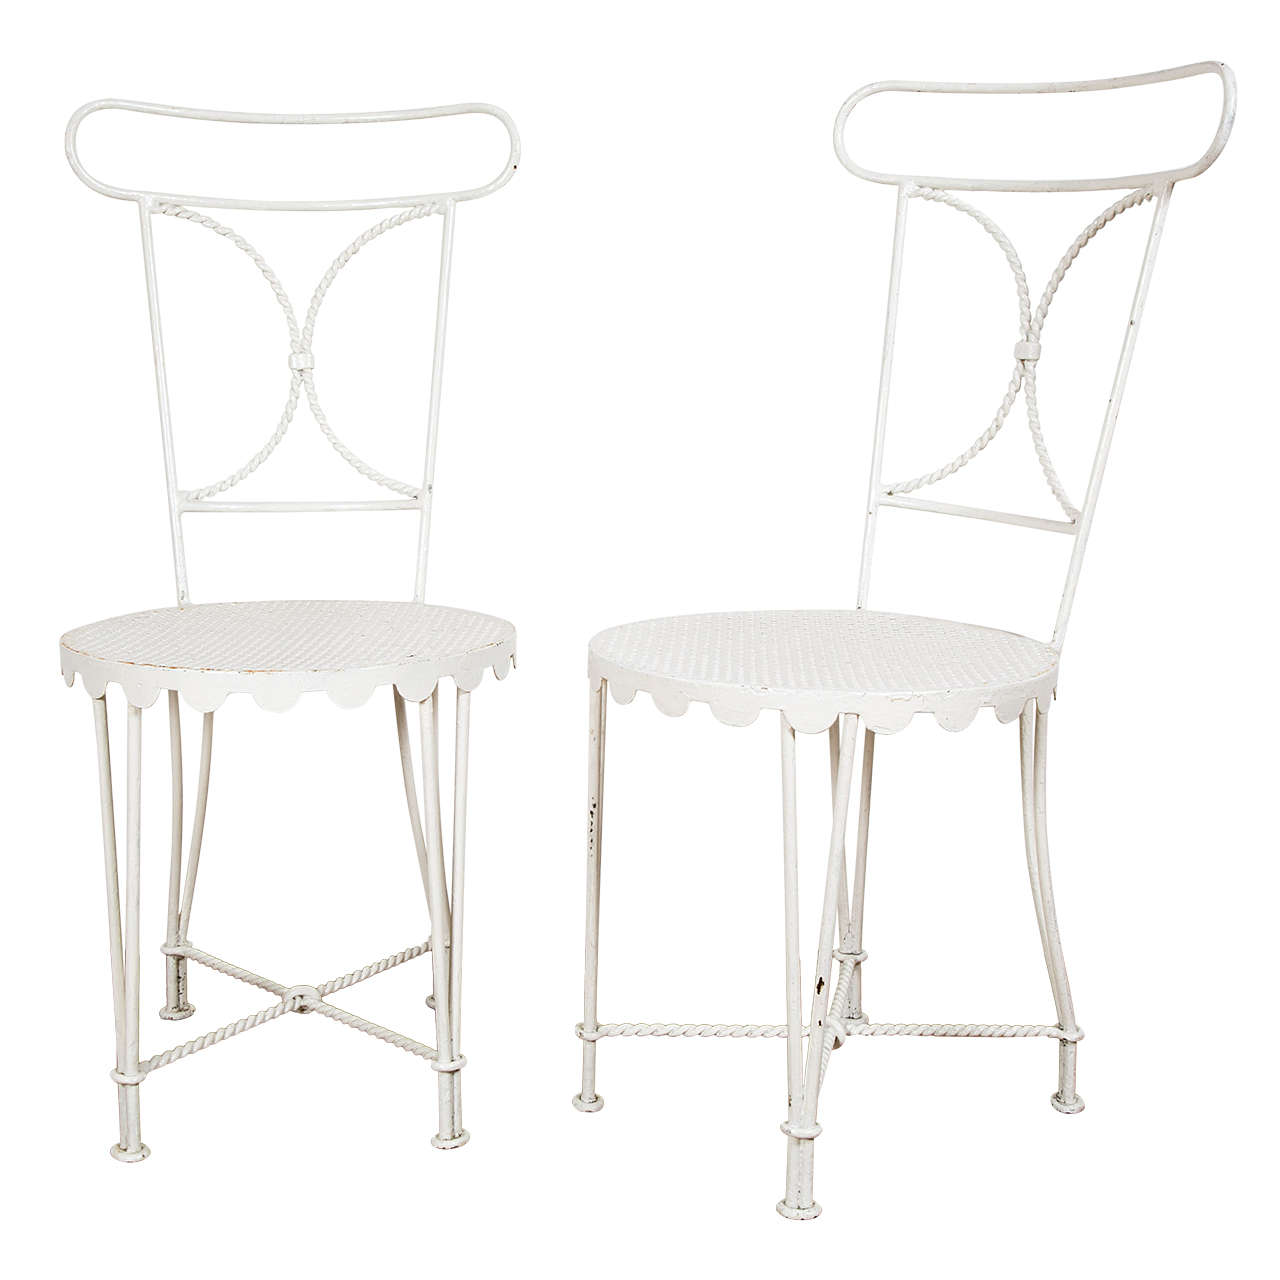 Pair of Wrought Iron Chairs by Gilbert Poillerat